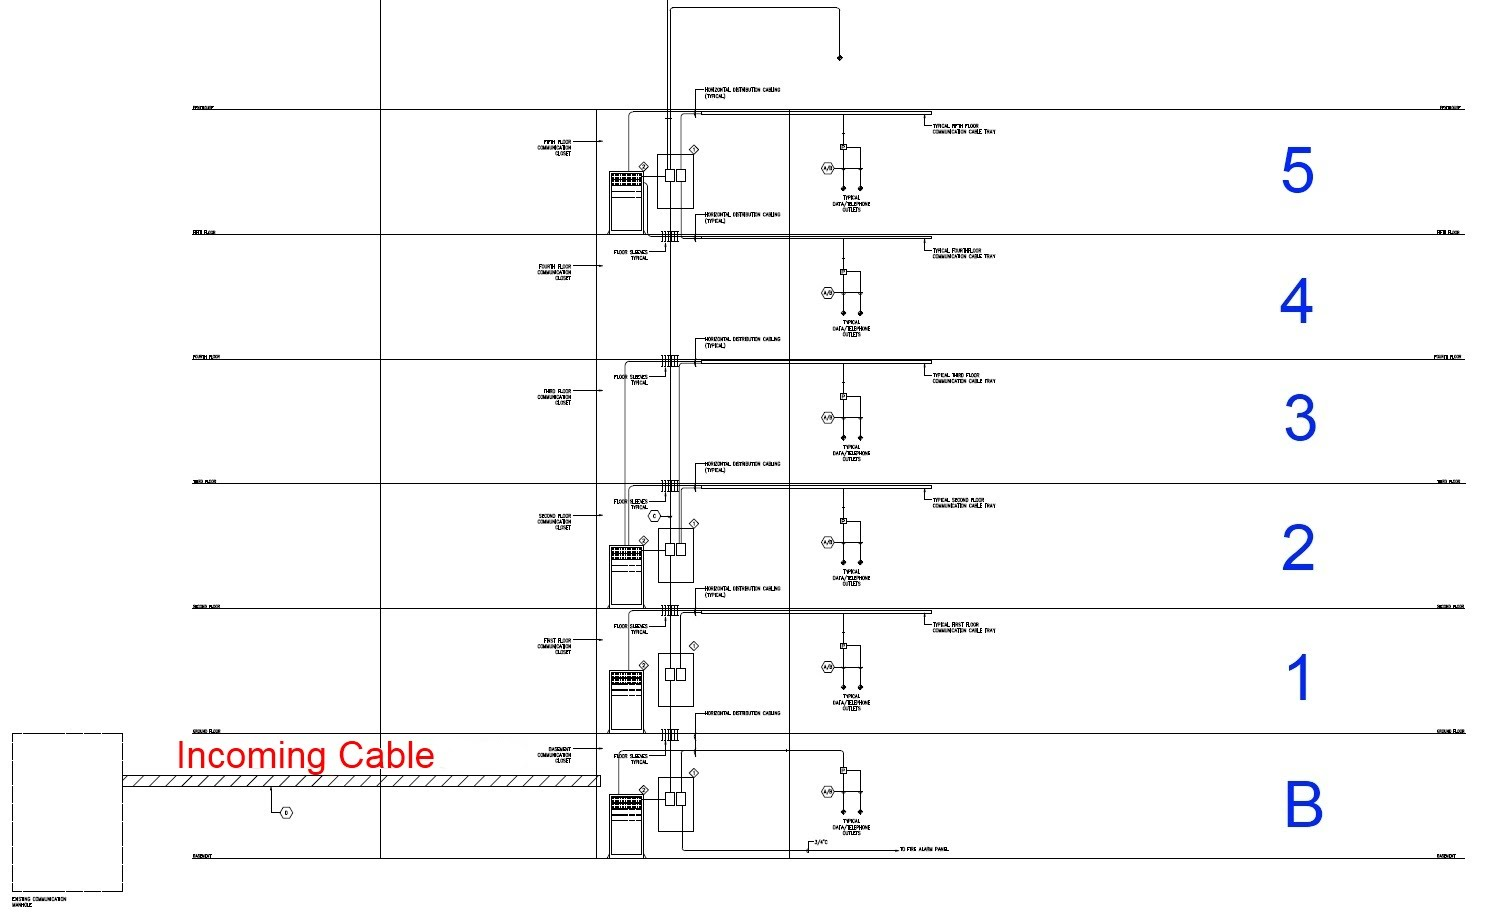 Cable Riser Diagrams - daily update wiring diagram on typical residential service diagram, solar electrical system diagram, residential electrical wiring diagrams, electrical single line diagram, residential gas line riser, residential roof vent diagram, ring circuit wiring diagram, residential electrical load calculations, residential one line diagram example, residential electrical service entrance, residential electrical meter box, residential electrical diagram symbols, residential electric service entrance diagram, electrical panel box wiring diagram, residential electrical panels, electric meter diagram, overhead service diagram, residential electrical details, electrical service diagram,